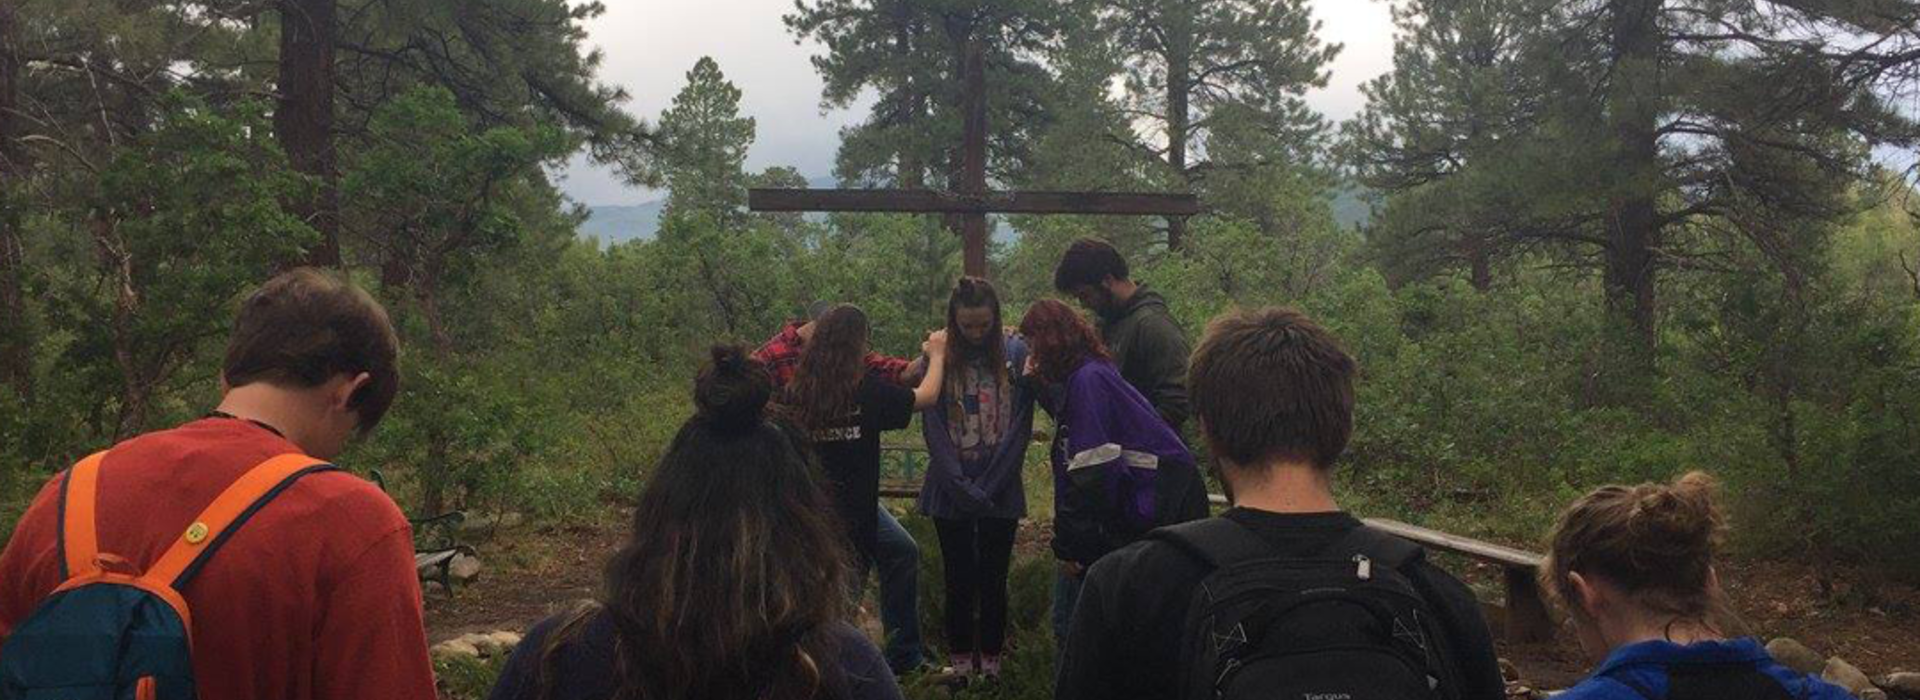 Students in the mountains praying around a cross